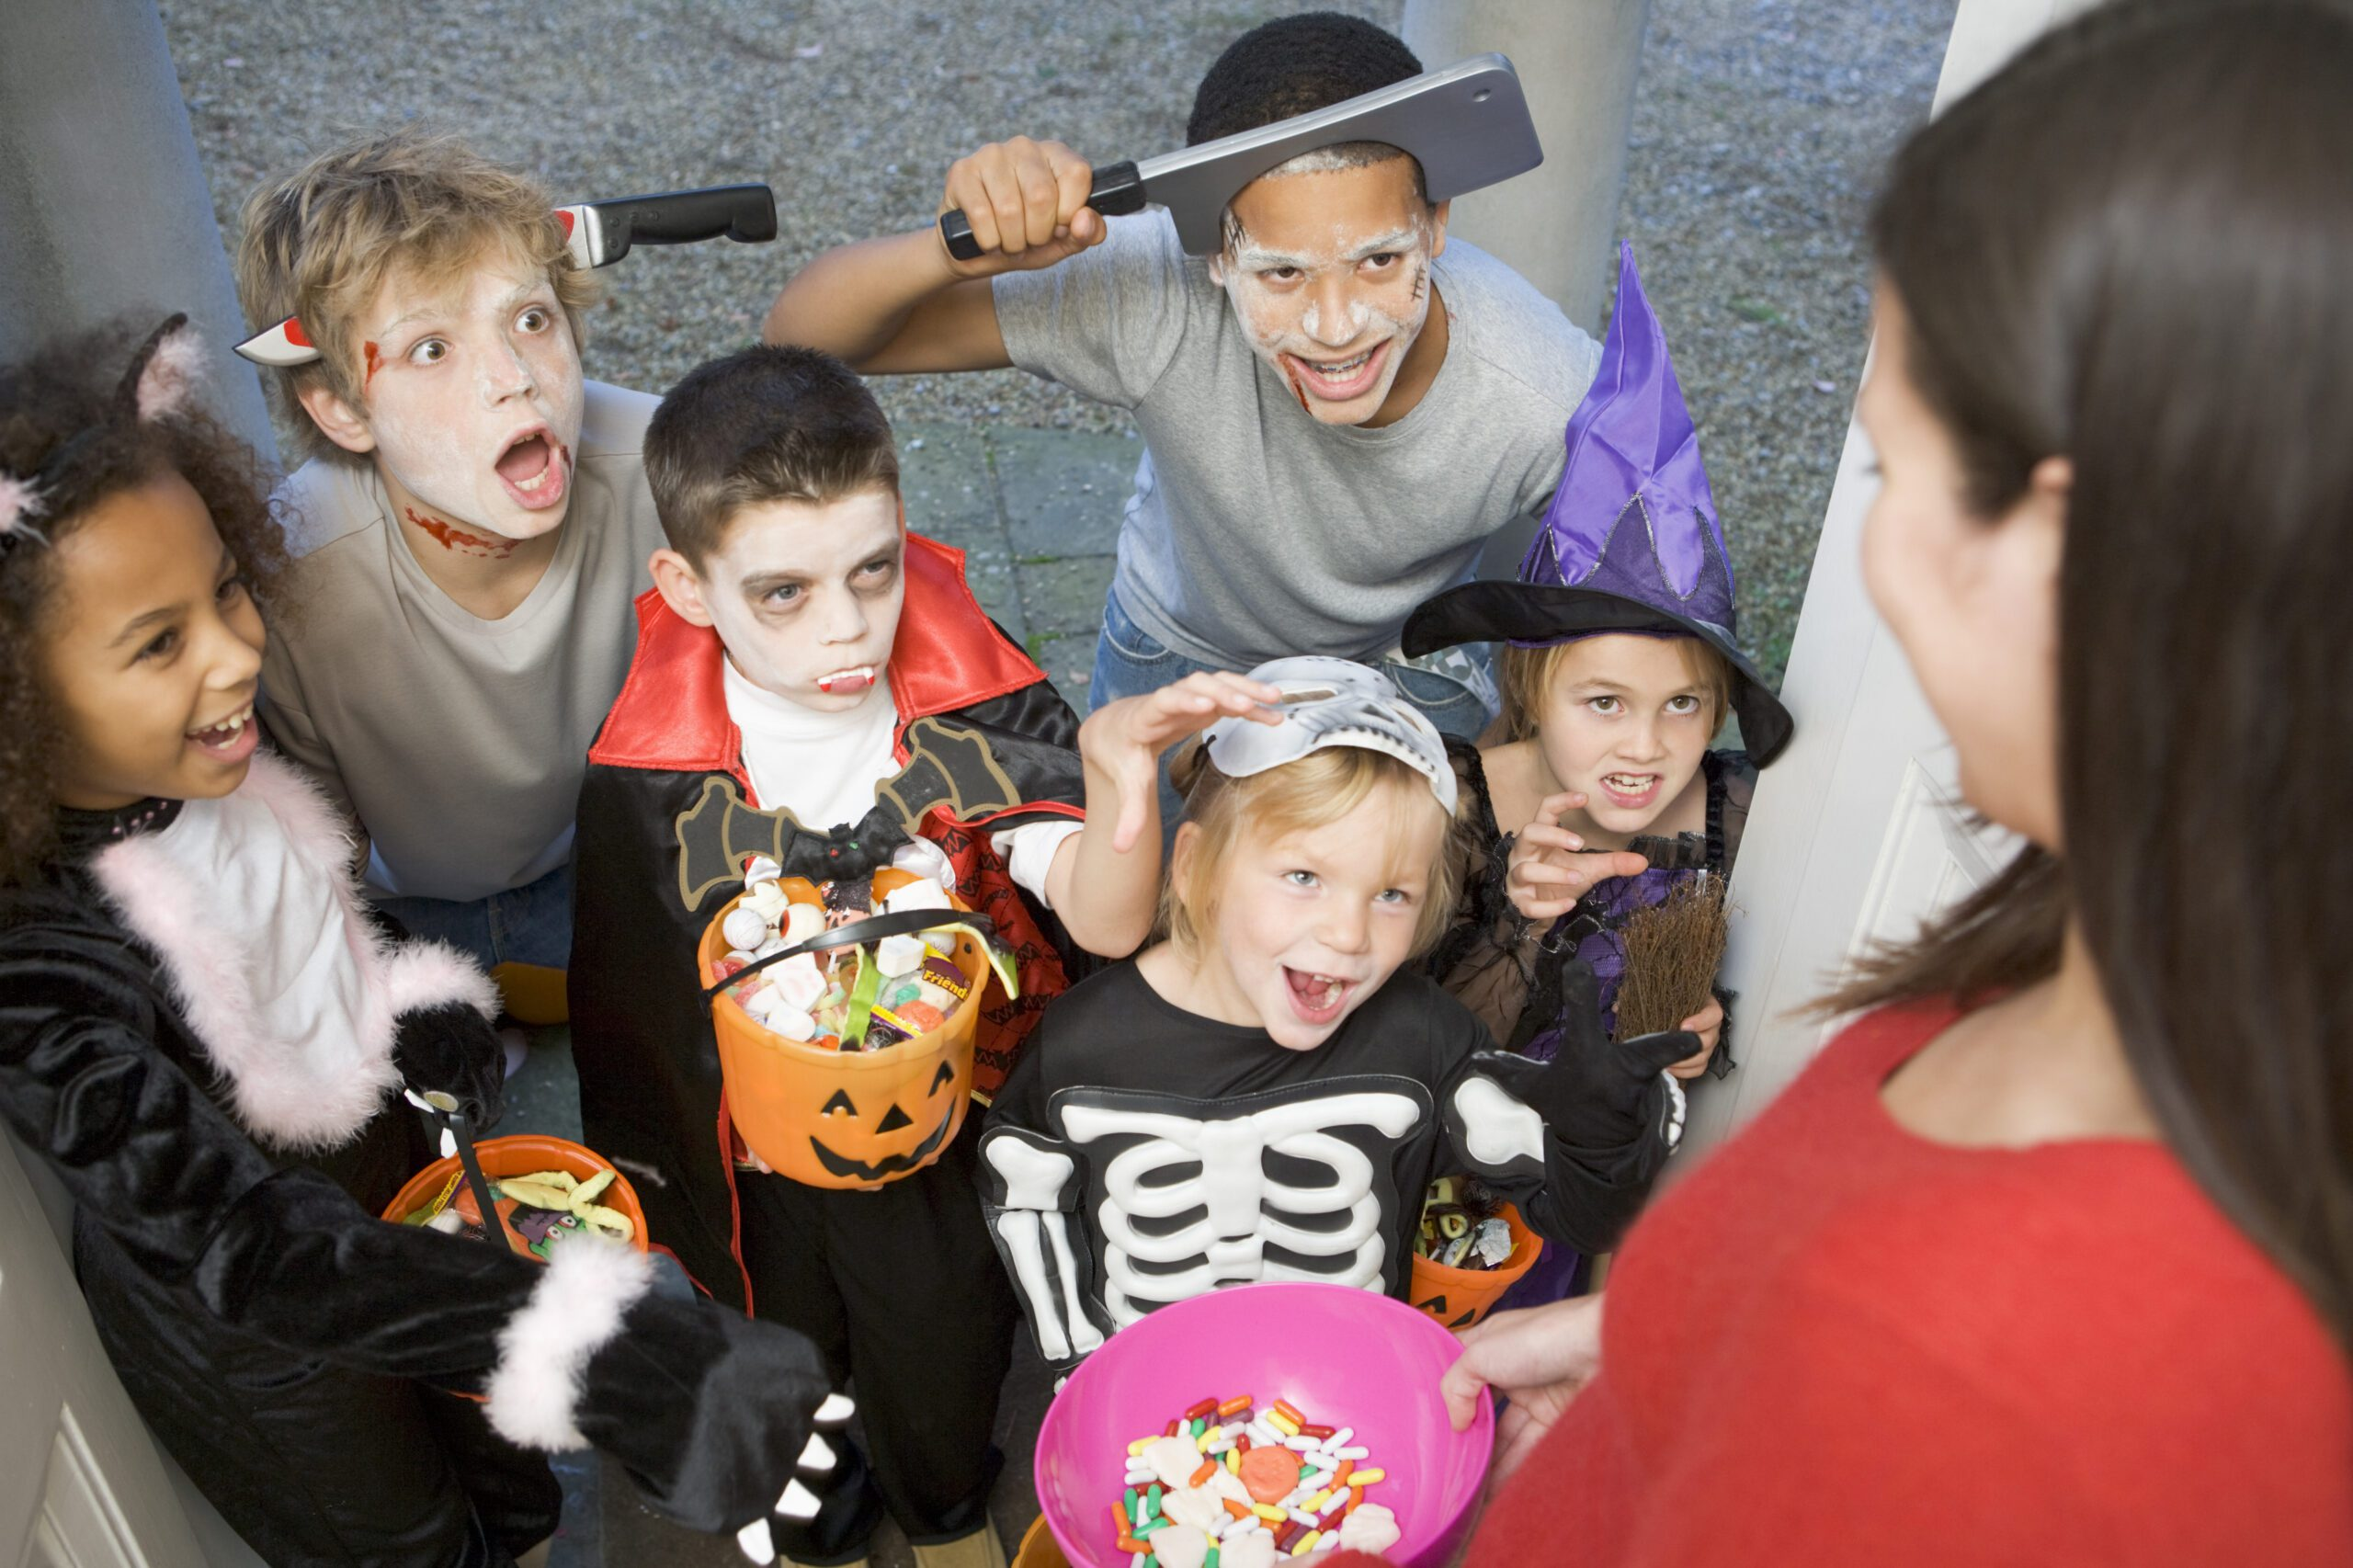 Kids dressed up trick or treating